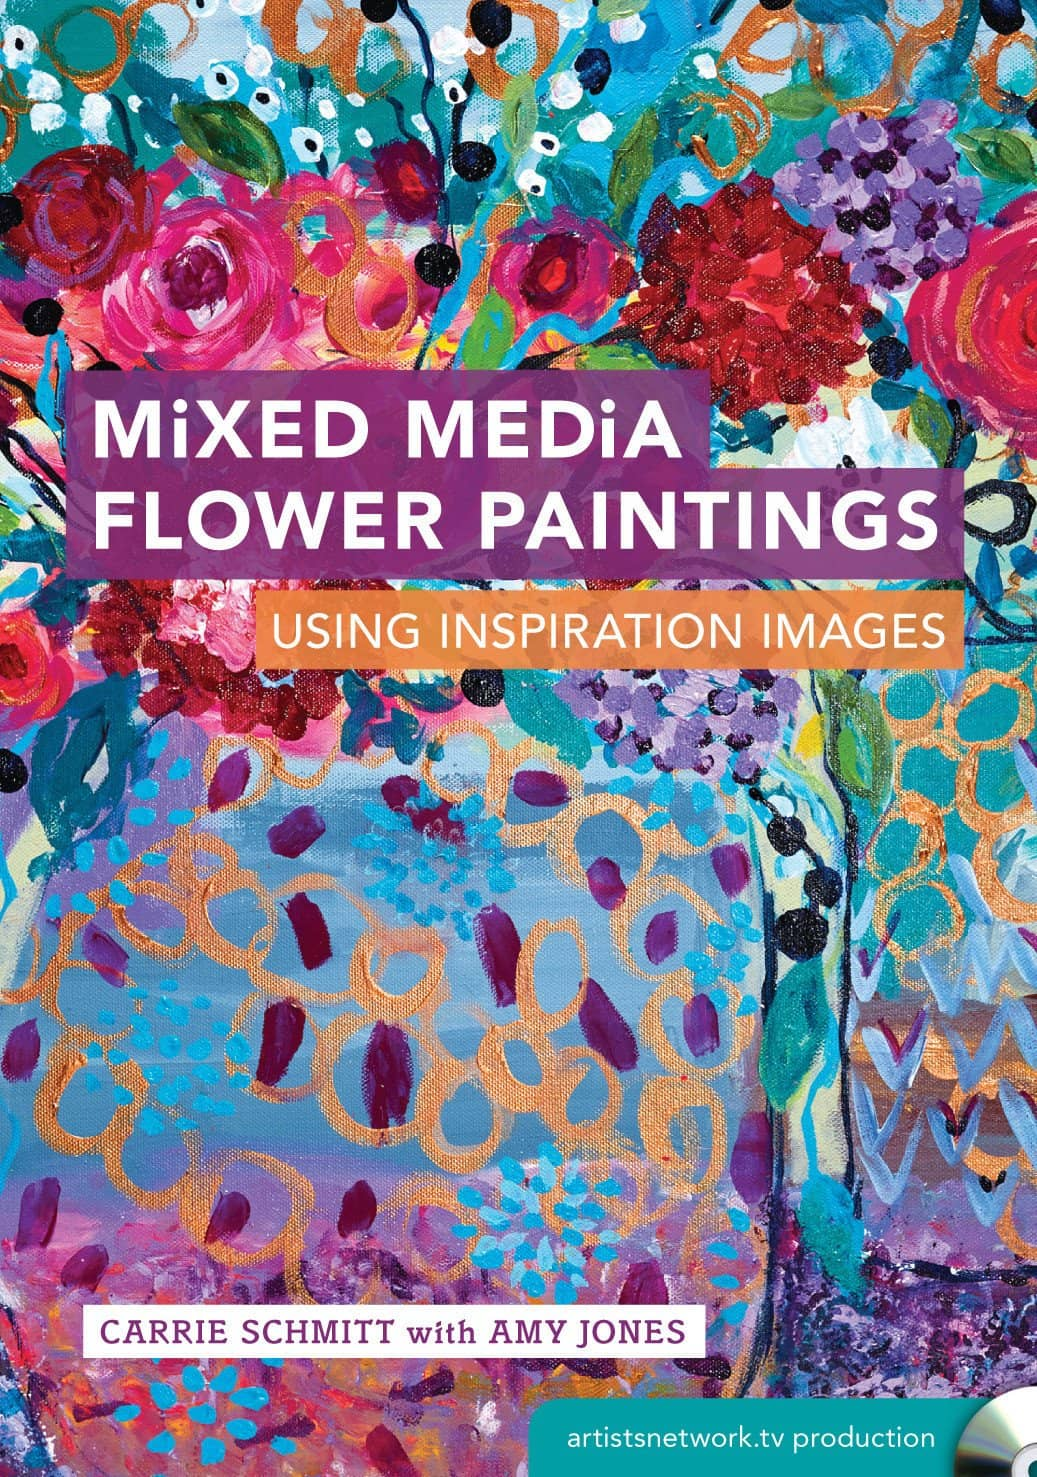 Mixed Media Flower Paintings Using Inspiration Images with Carrie Schmitt and Amy Jones